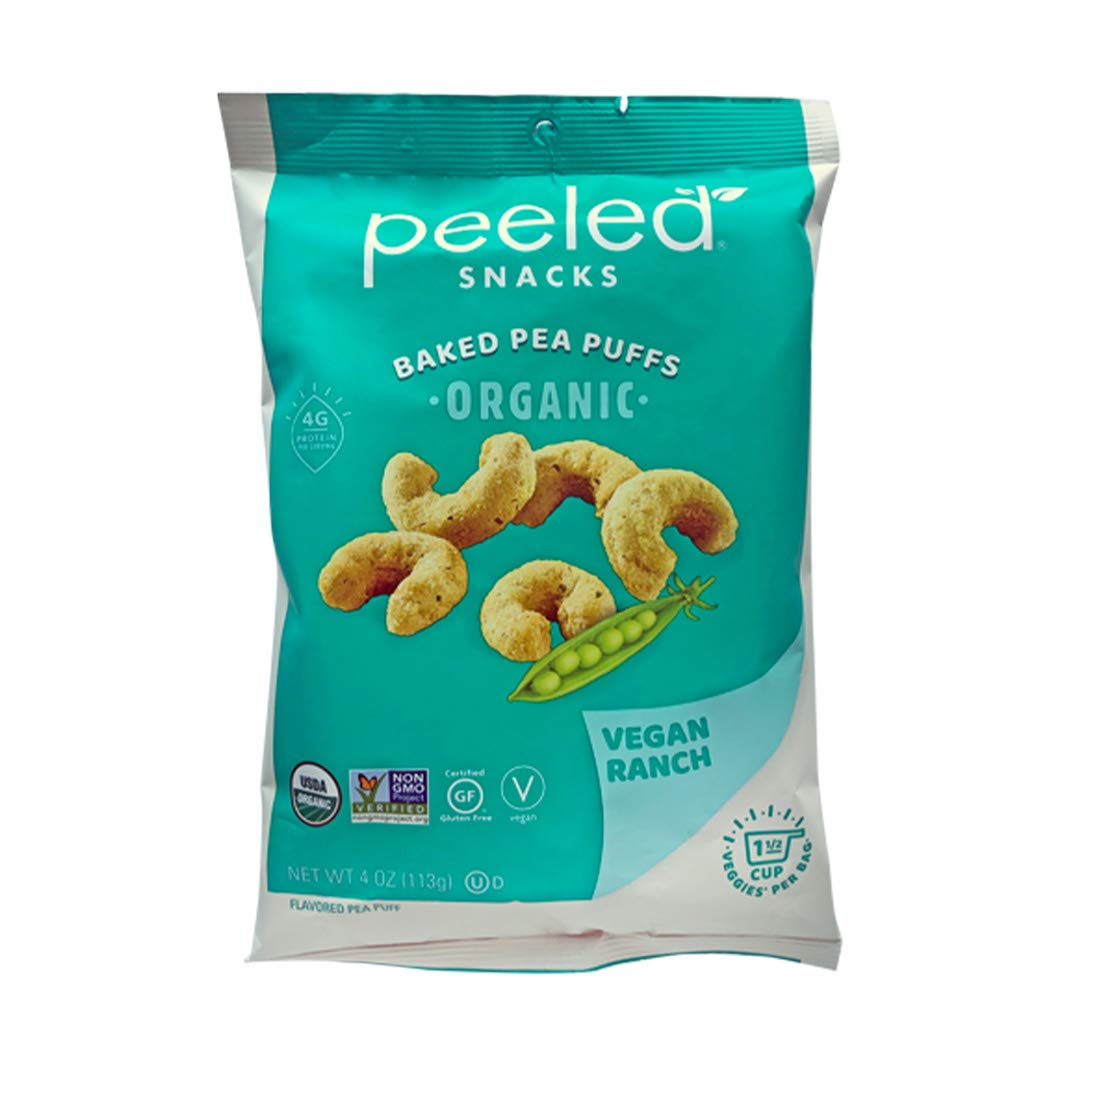 Peeled Snacks Organic Baked Pea Puffs, Vegan Ranch, 4 Ounce